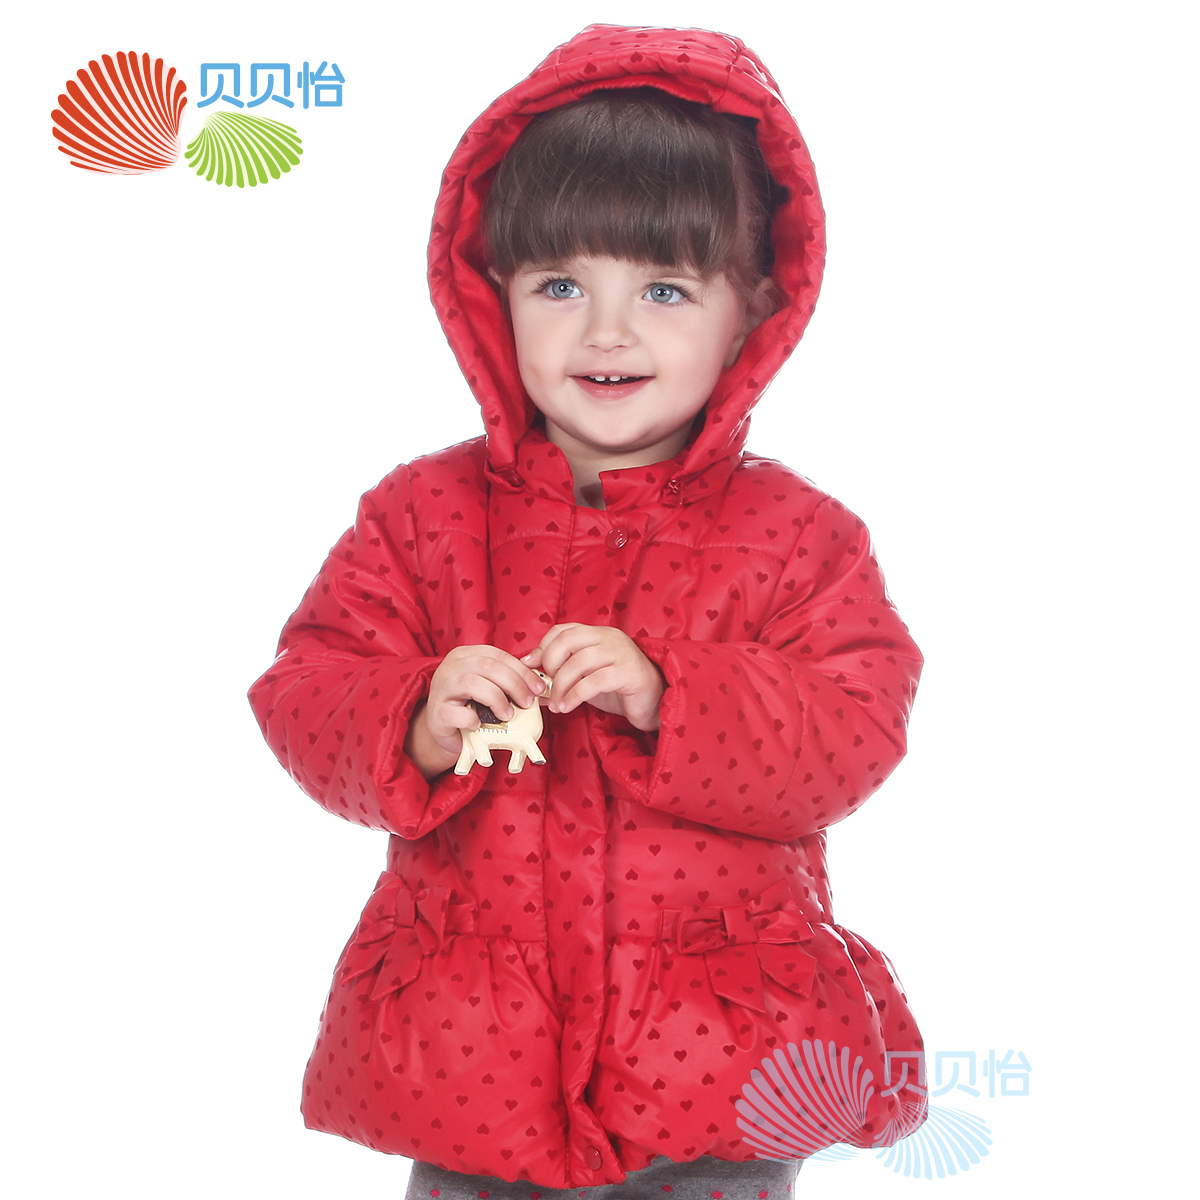 Baby Baby Grace Children Quilted Cotton Coat with Thick Cotton-padded Jacket Baby Cotton-padded Girls JacketBaby Baby Grace Children Quilted Cotton Coat with Thick Cotton-padded Jacket Baby Cotton-padded Girls Jacket